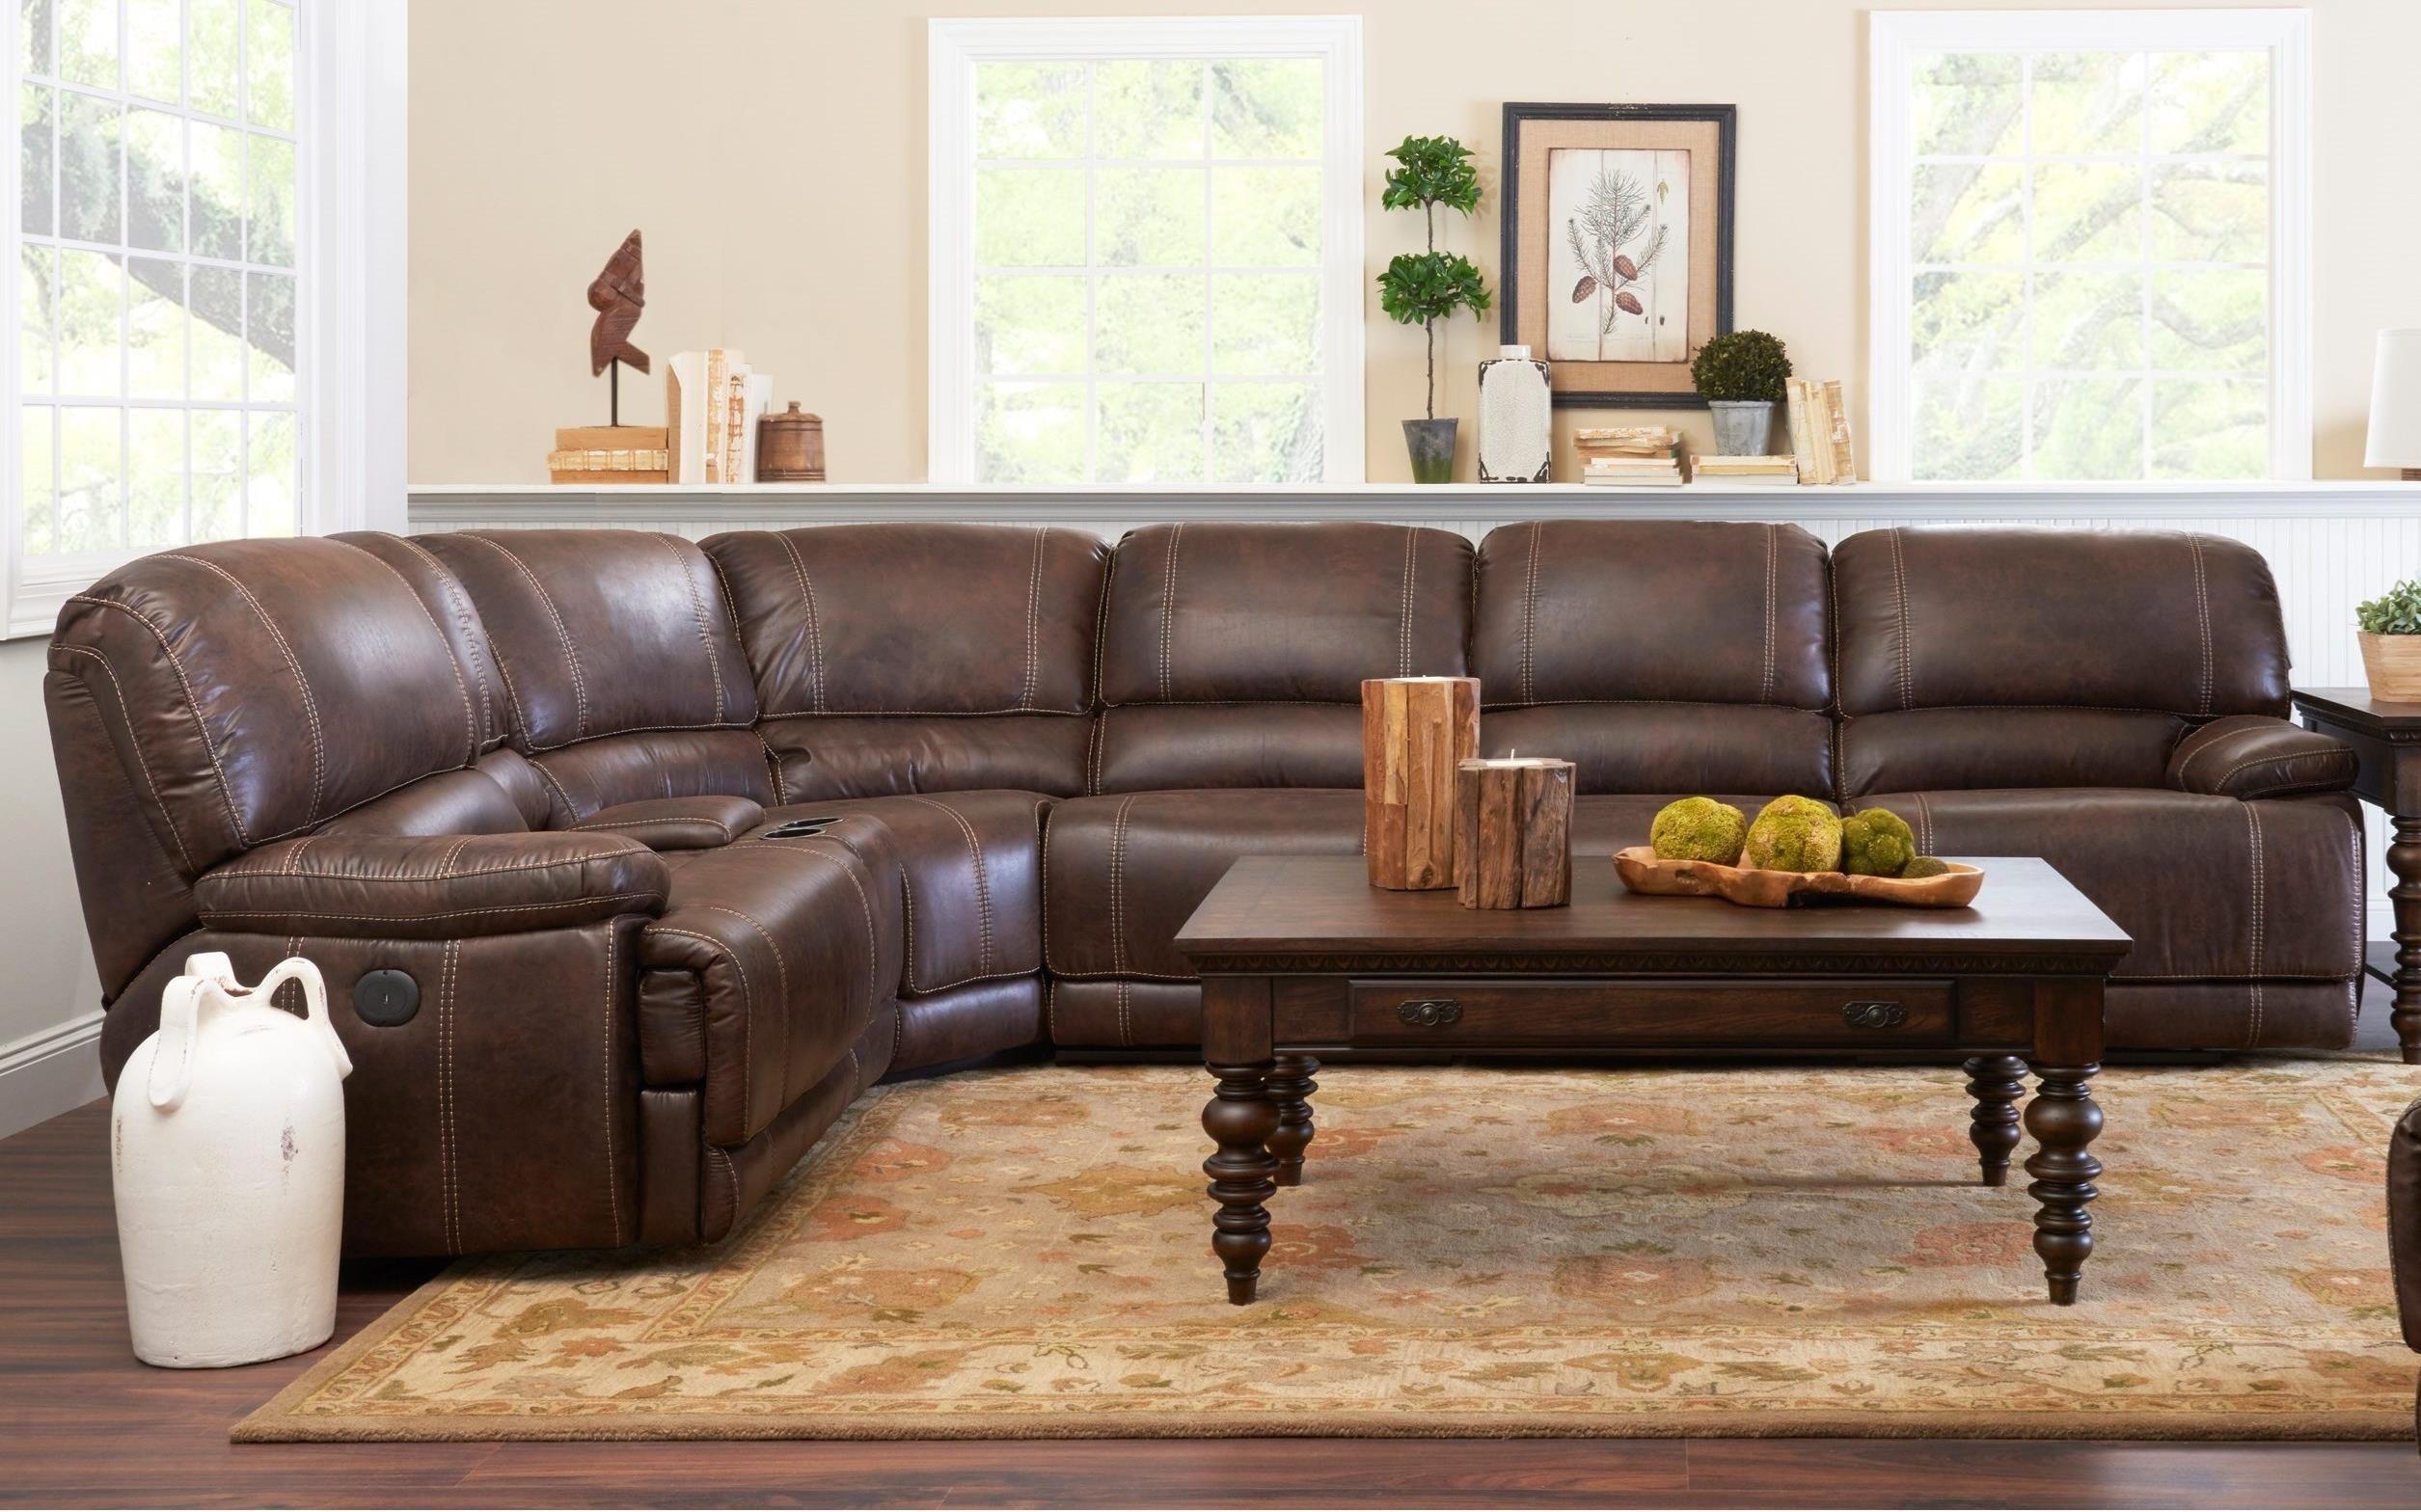 Klaussner International Foster Six Piece Power Reclining Sectional Sofa - Royal Furniture - Reclining Sectional Sofas  sc 1 st  Royal Furniture : klaussner sectional sofa - Sectionals, Sofas & Couches